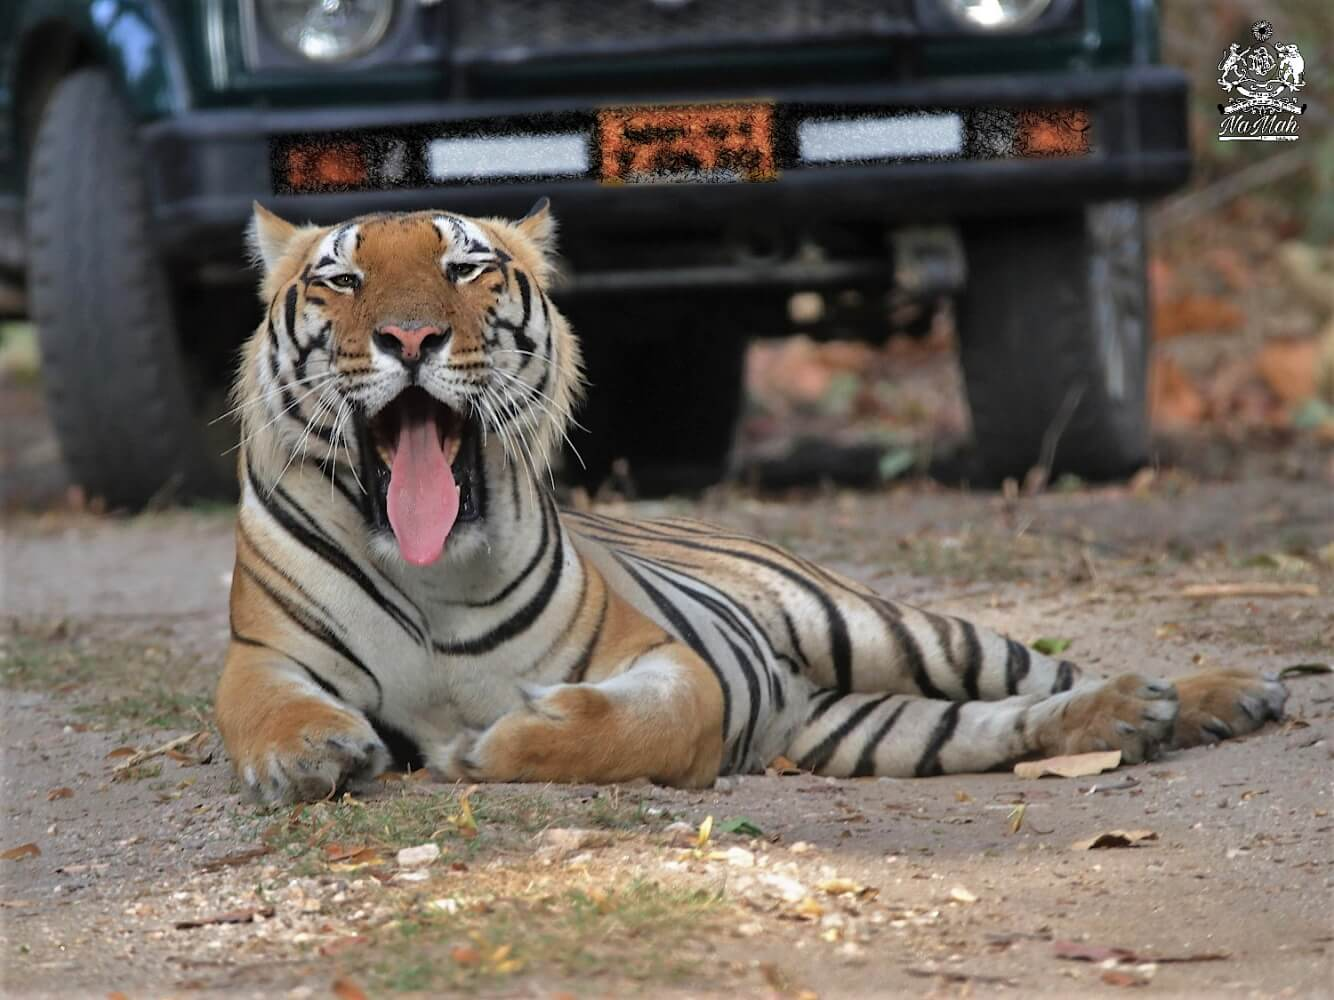 Tiger sitting and yawning on road blocking safari traffic